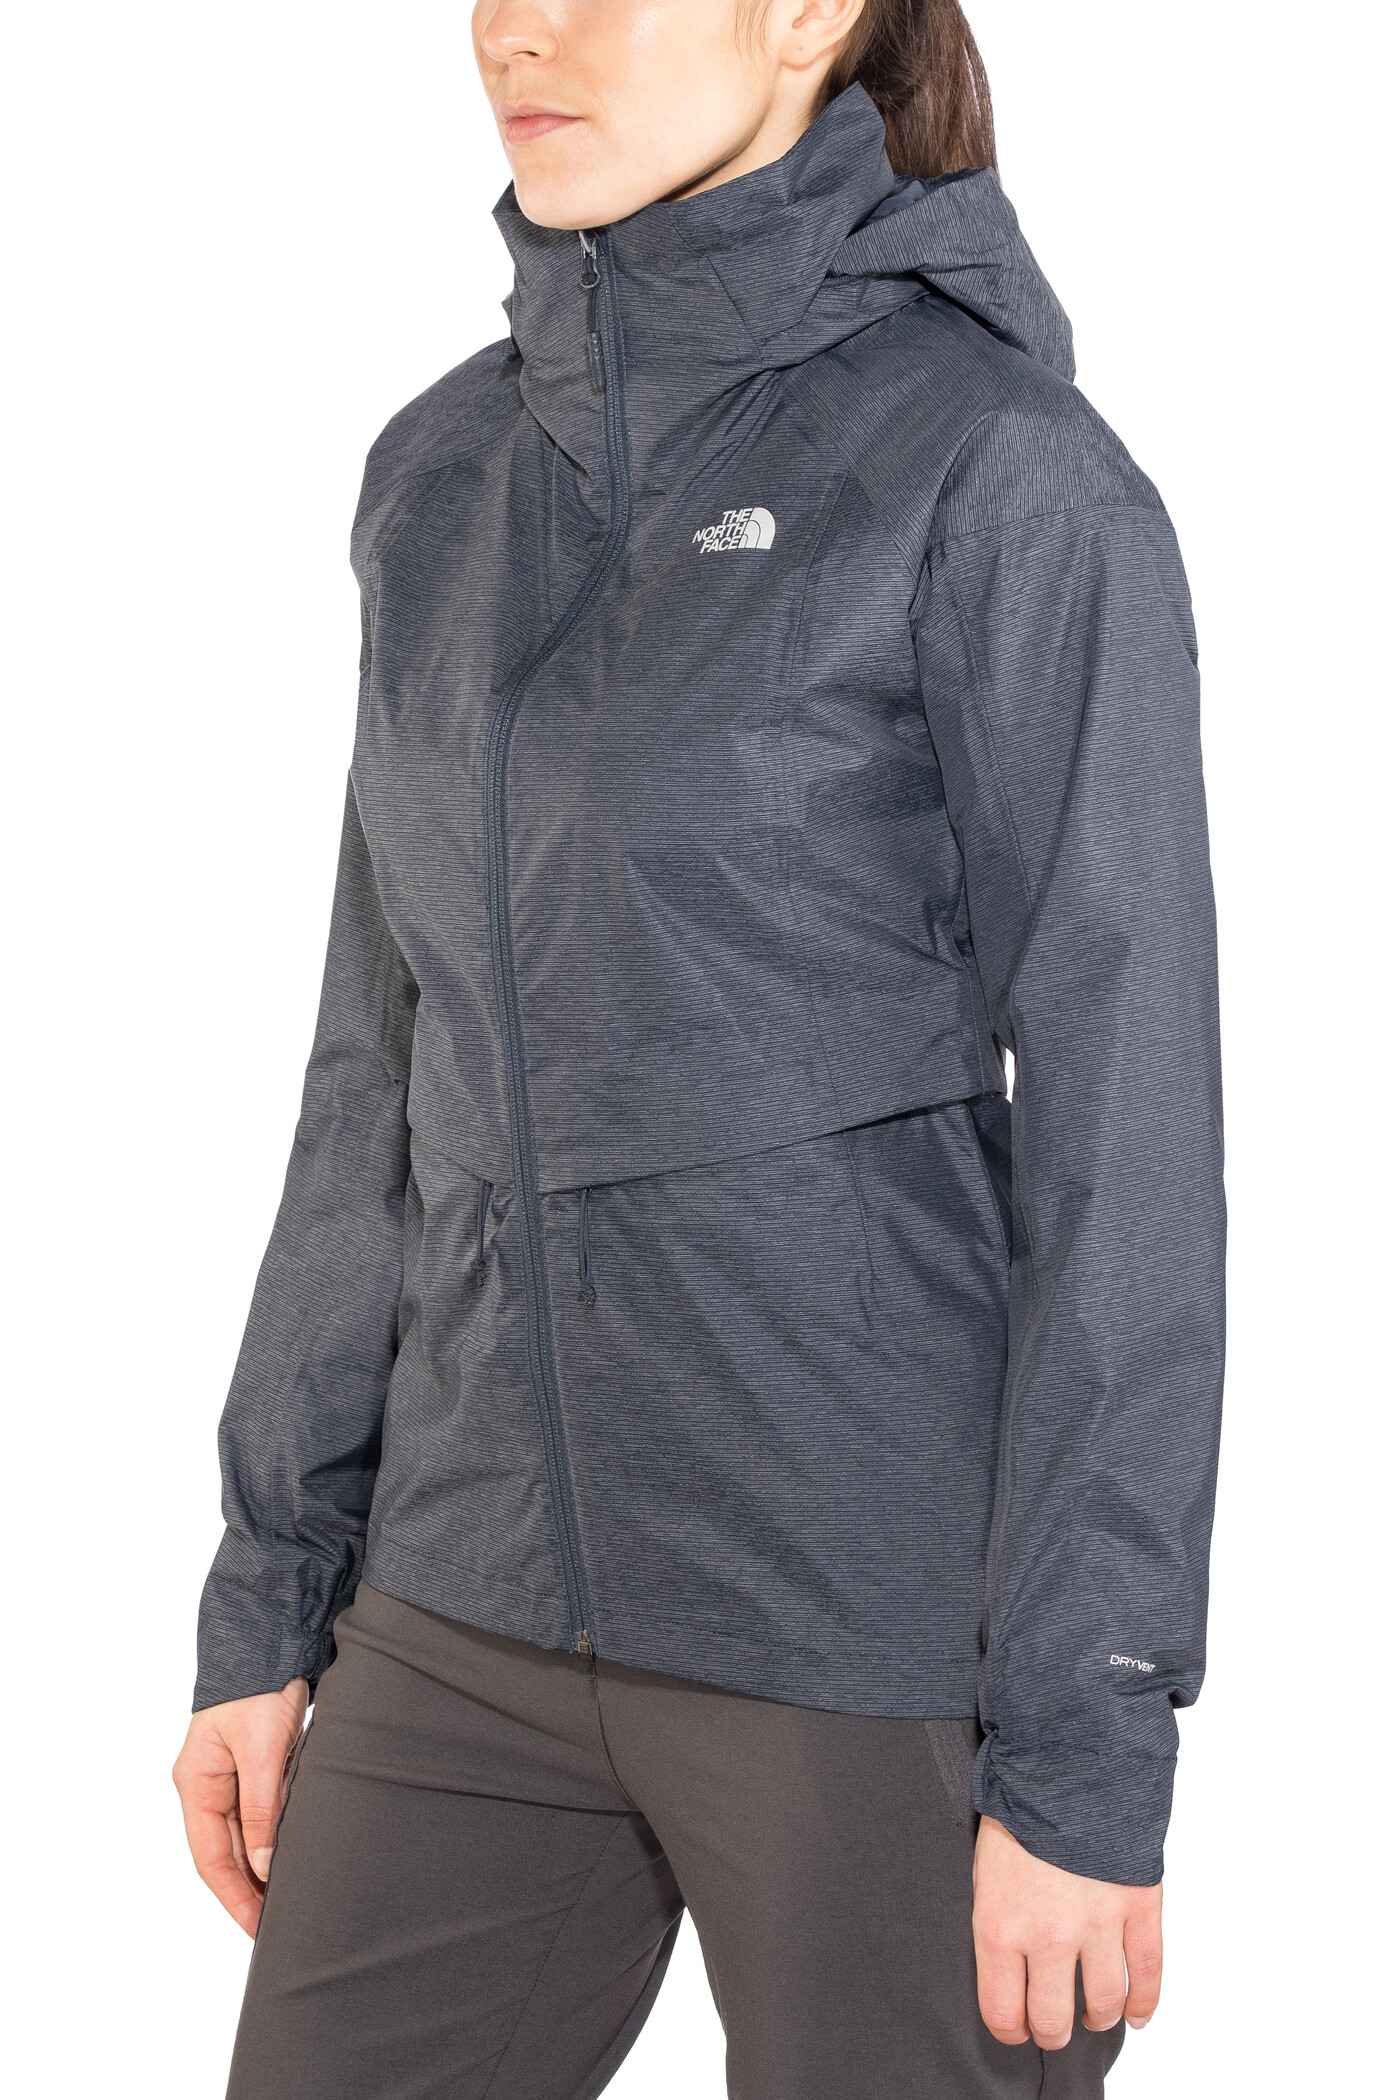 The North Face Inlux Dryvent Jacket Dam